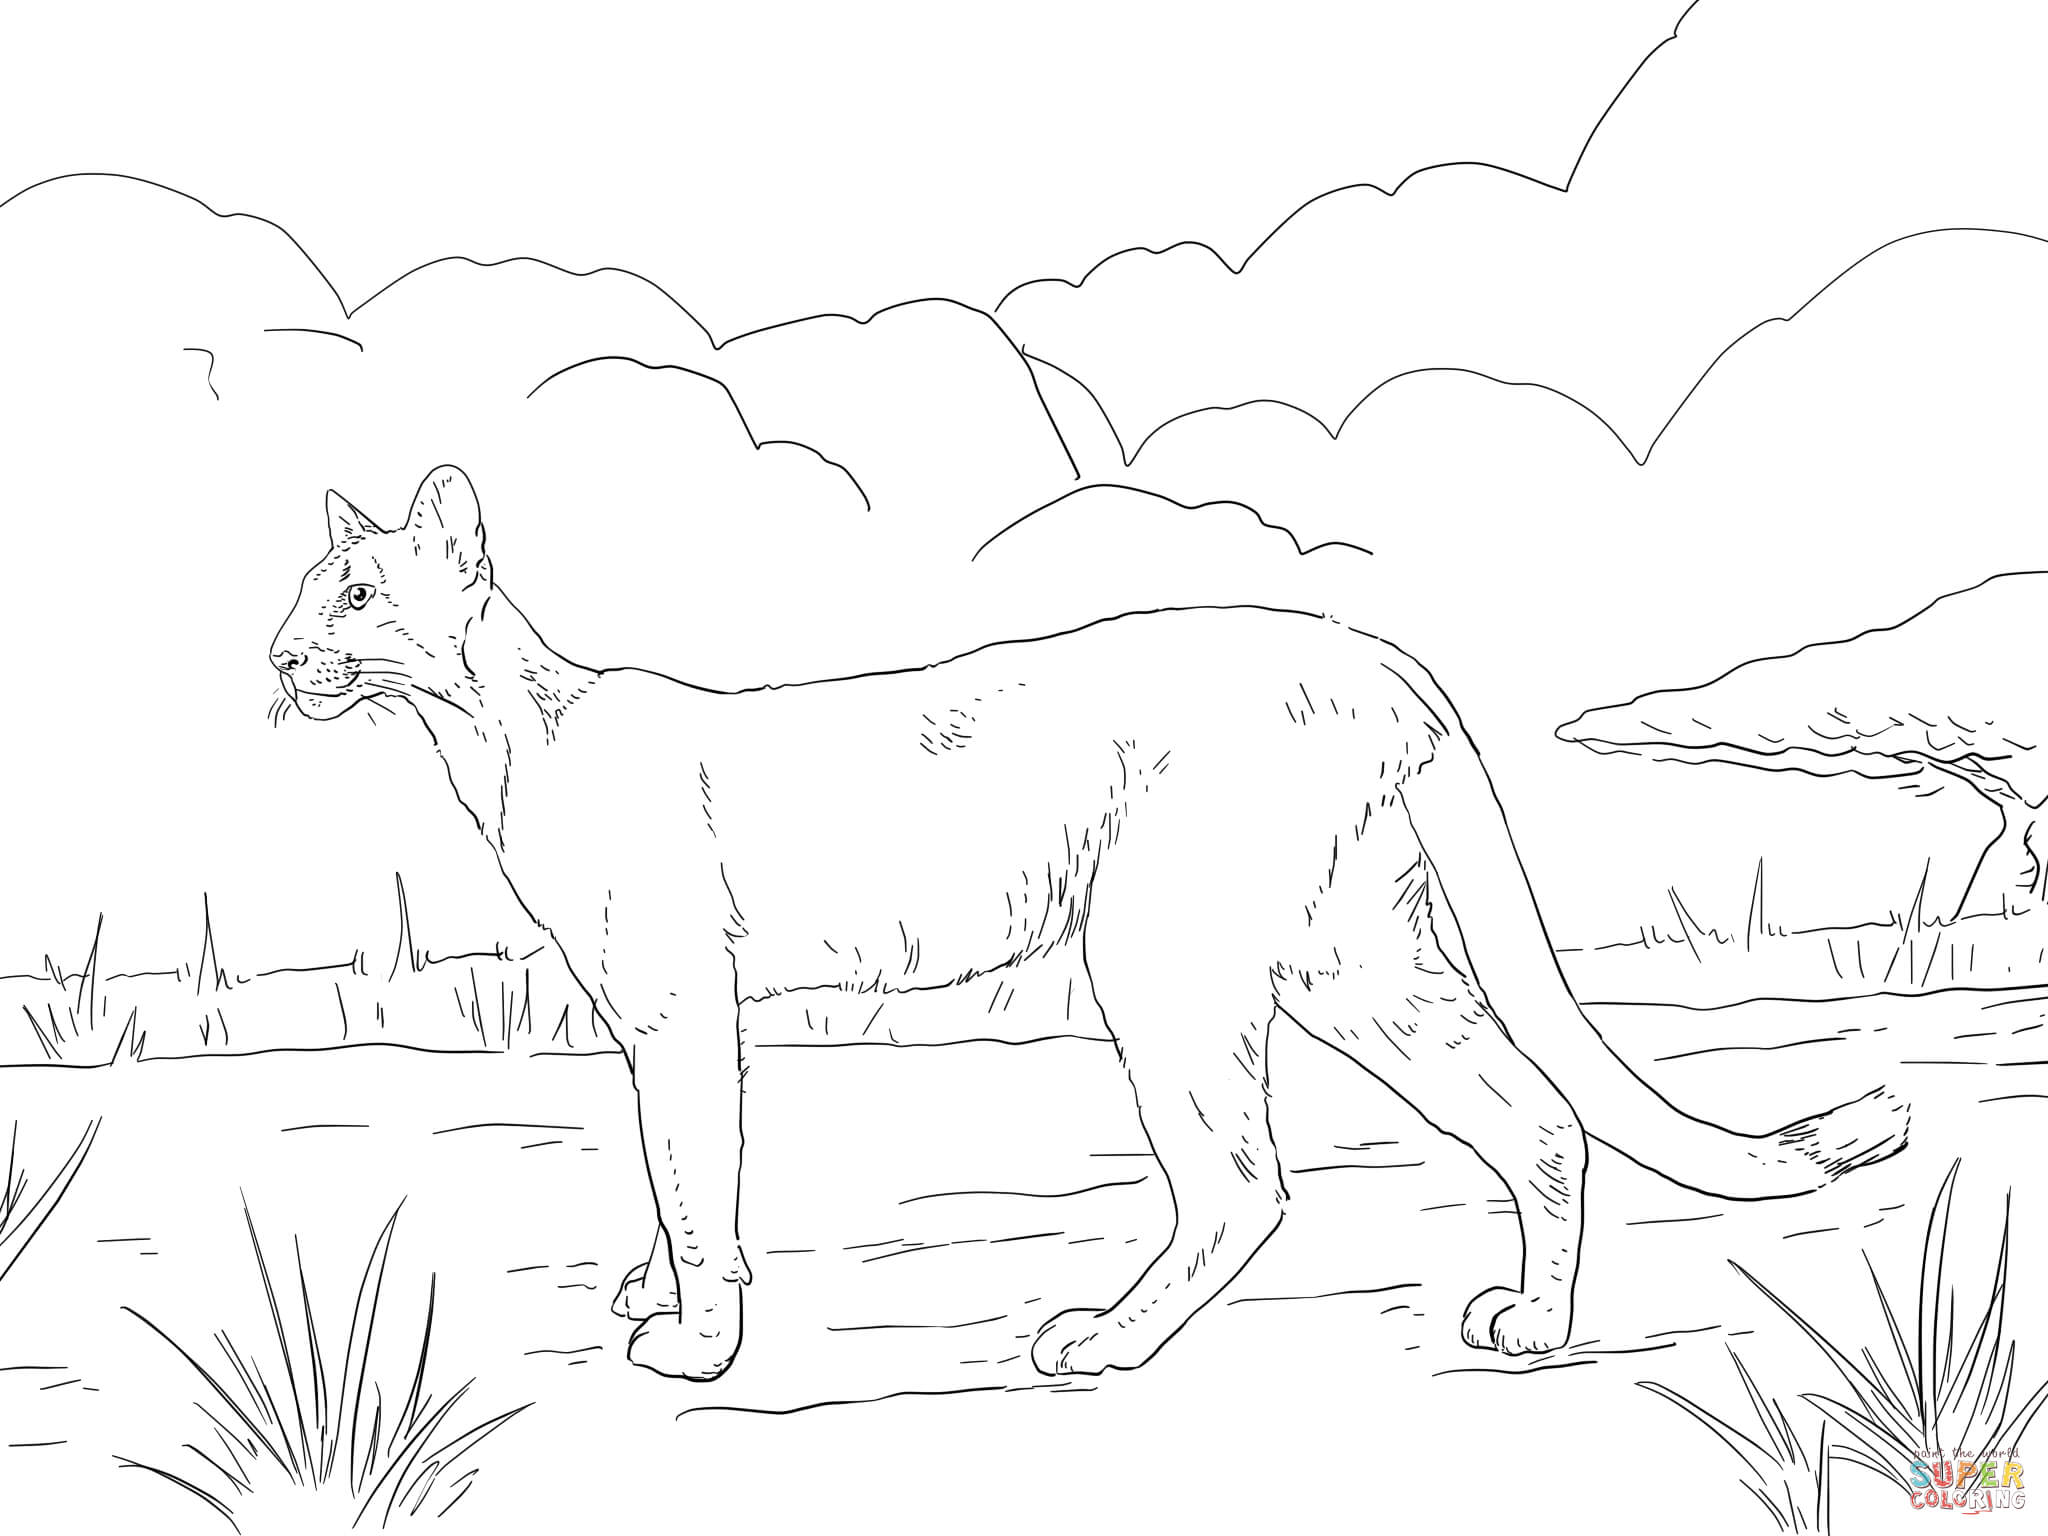 panther-coloring-page-0005-q1